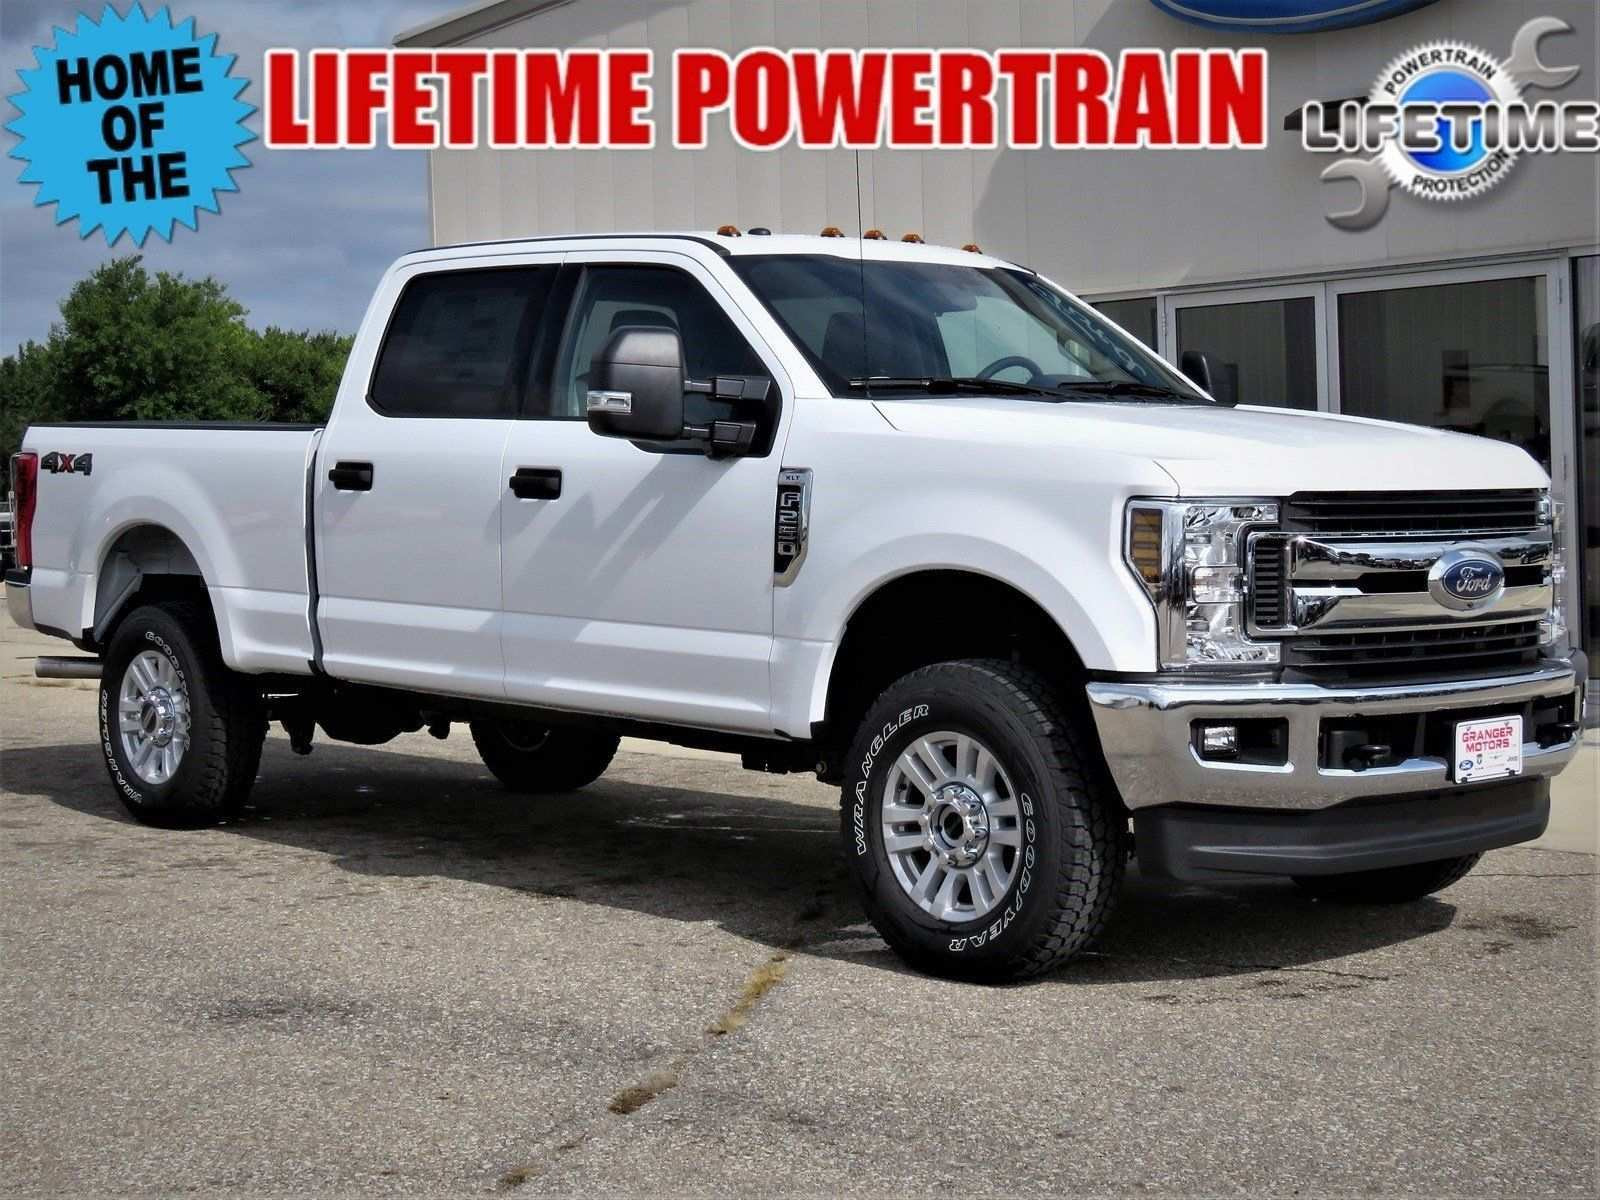 61 Concept of 2019 Ford Super Duty Order Guide Spy Shoot Reviews by 2019 Ford Super Duty Order Guide Spy Shoot